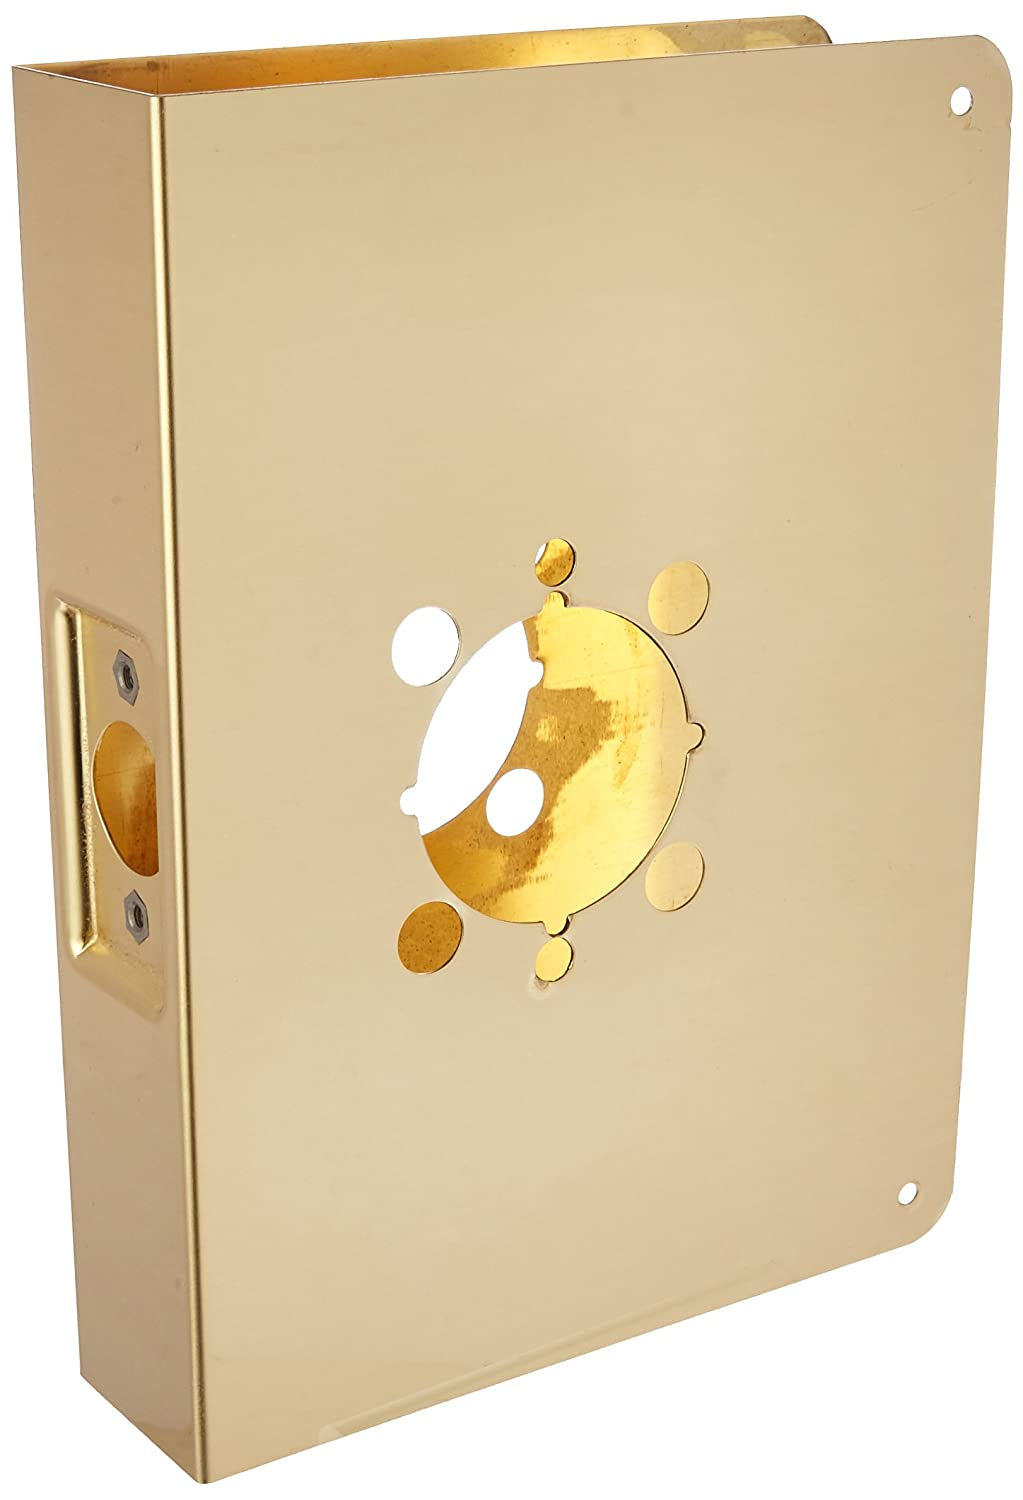 Don-Jo 55A-2-CW 22 Gauge Stainless Steel Mortise Lock Wrap-Around Plate Polished Brass Finish 6-1//2 Width x 9 Height